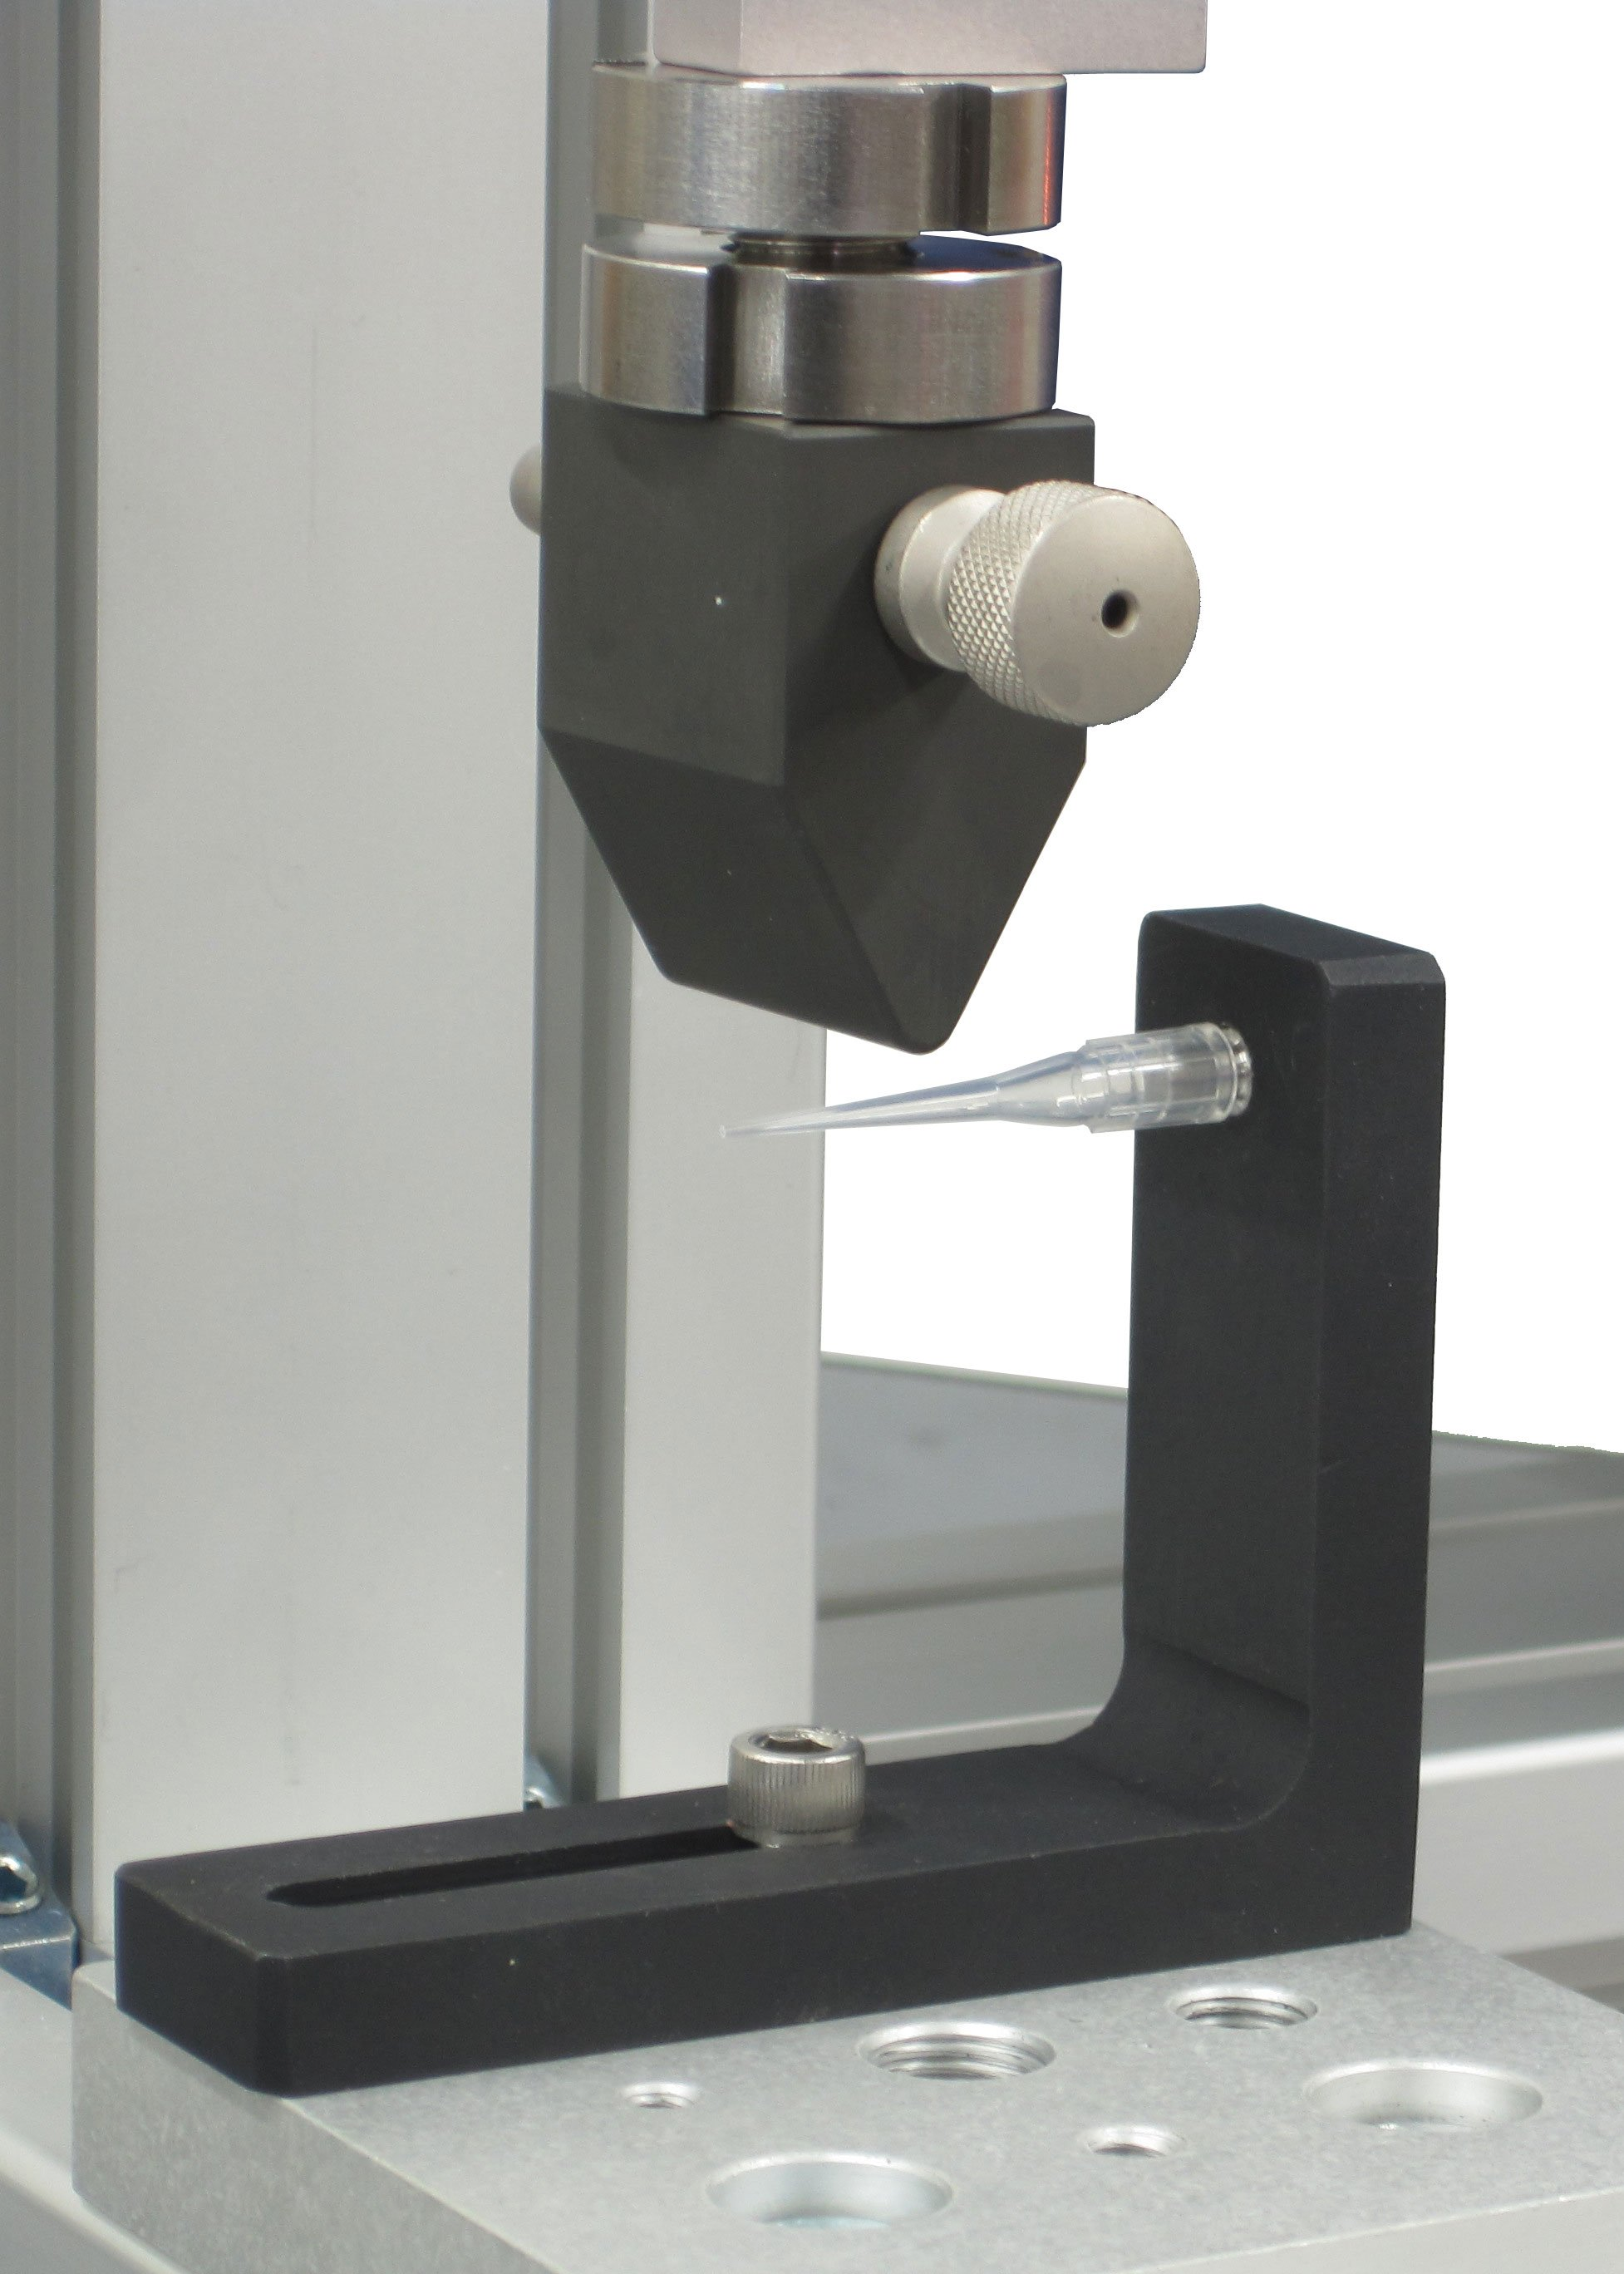 pipette bend test fixture